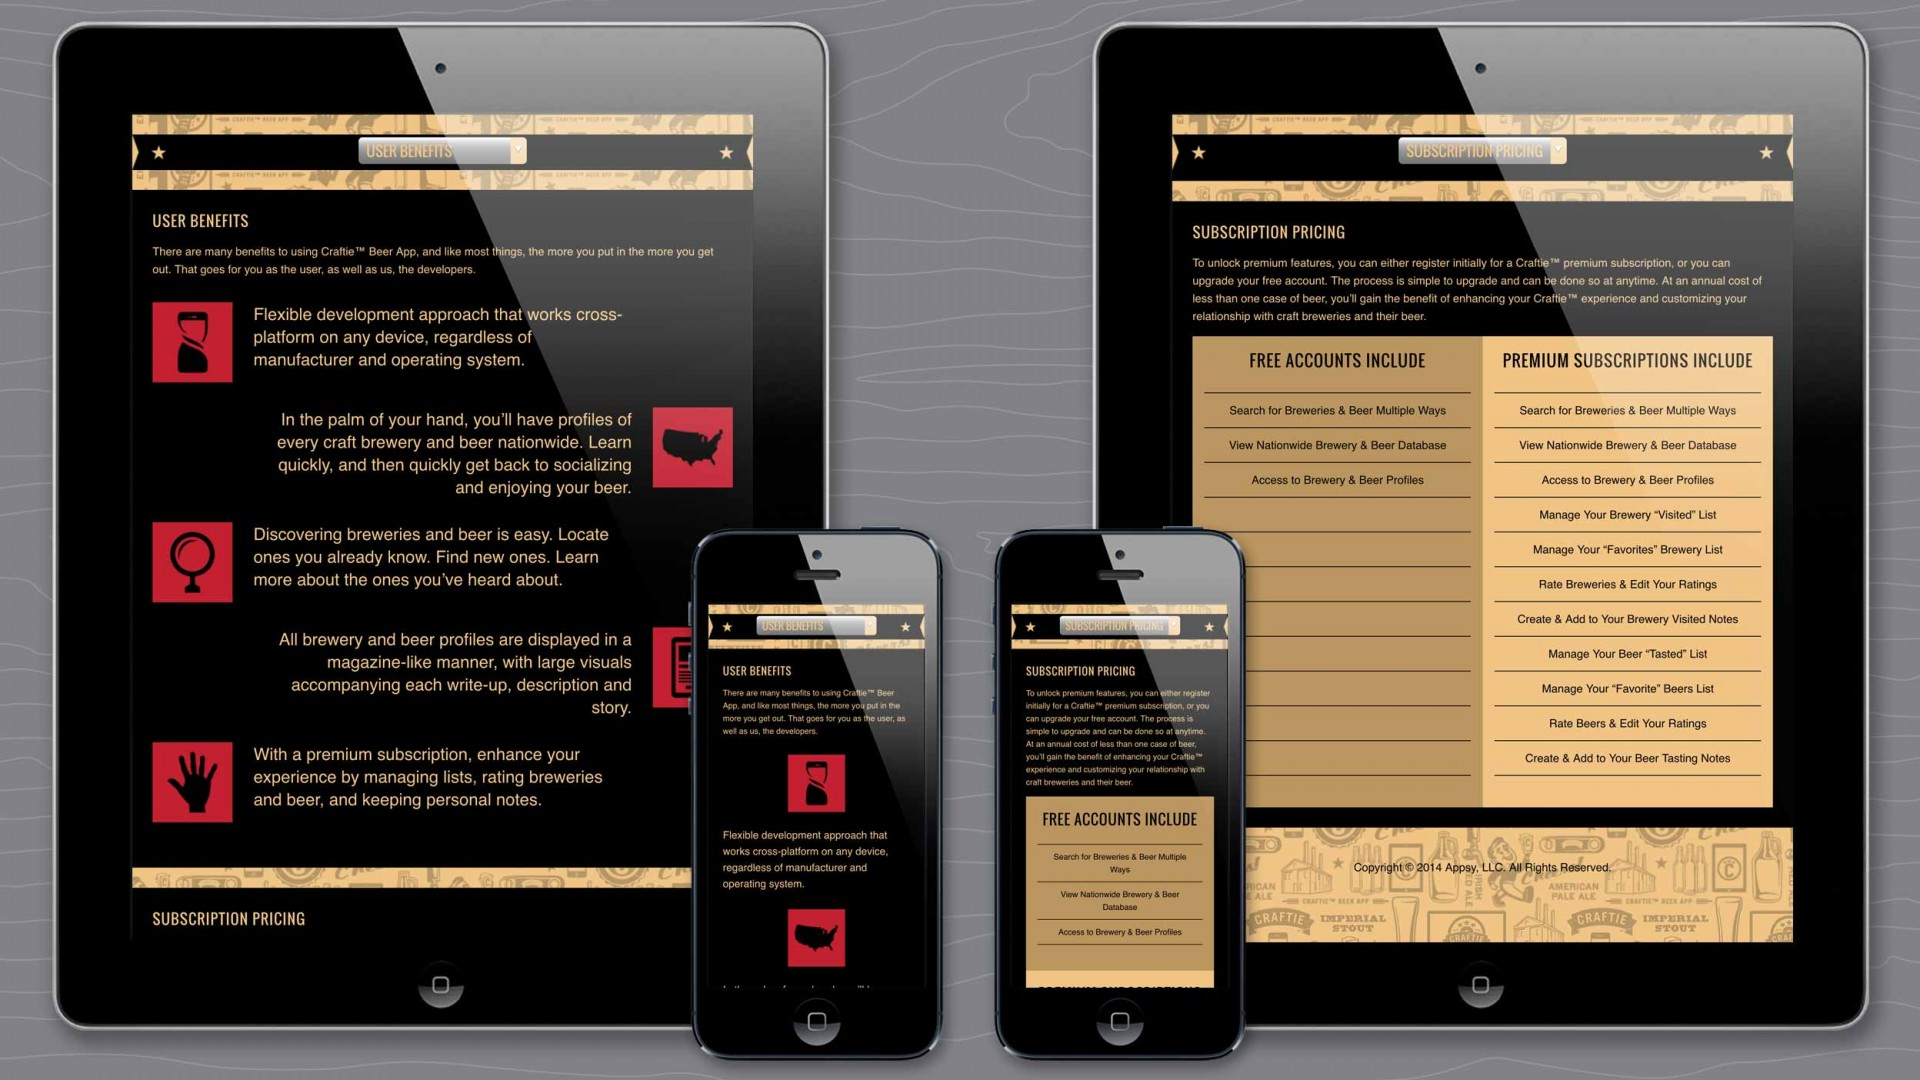 Benefits and Pricing pages of Craftie™ responsive marketing website.